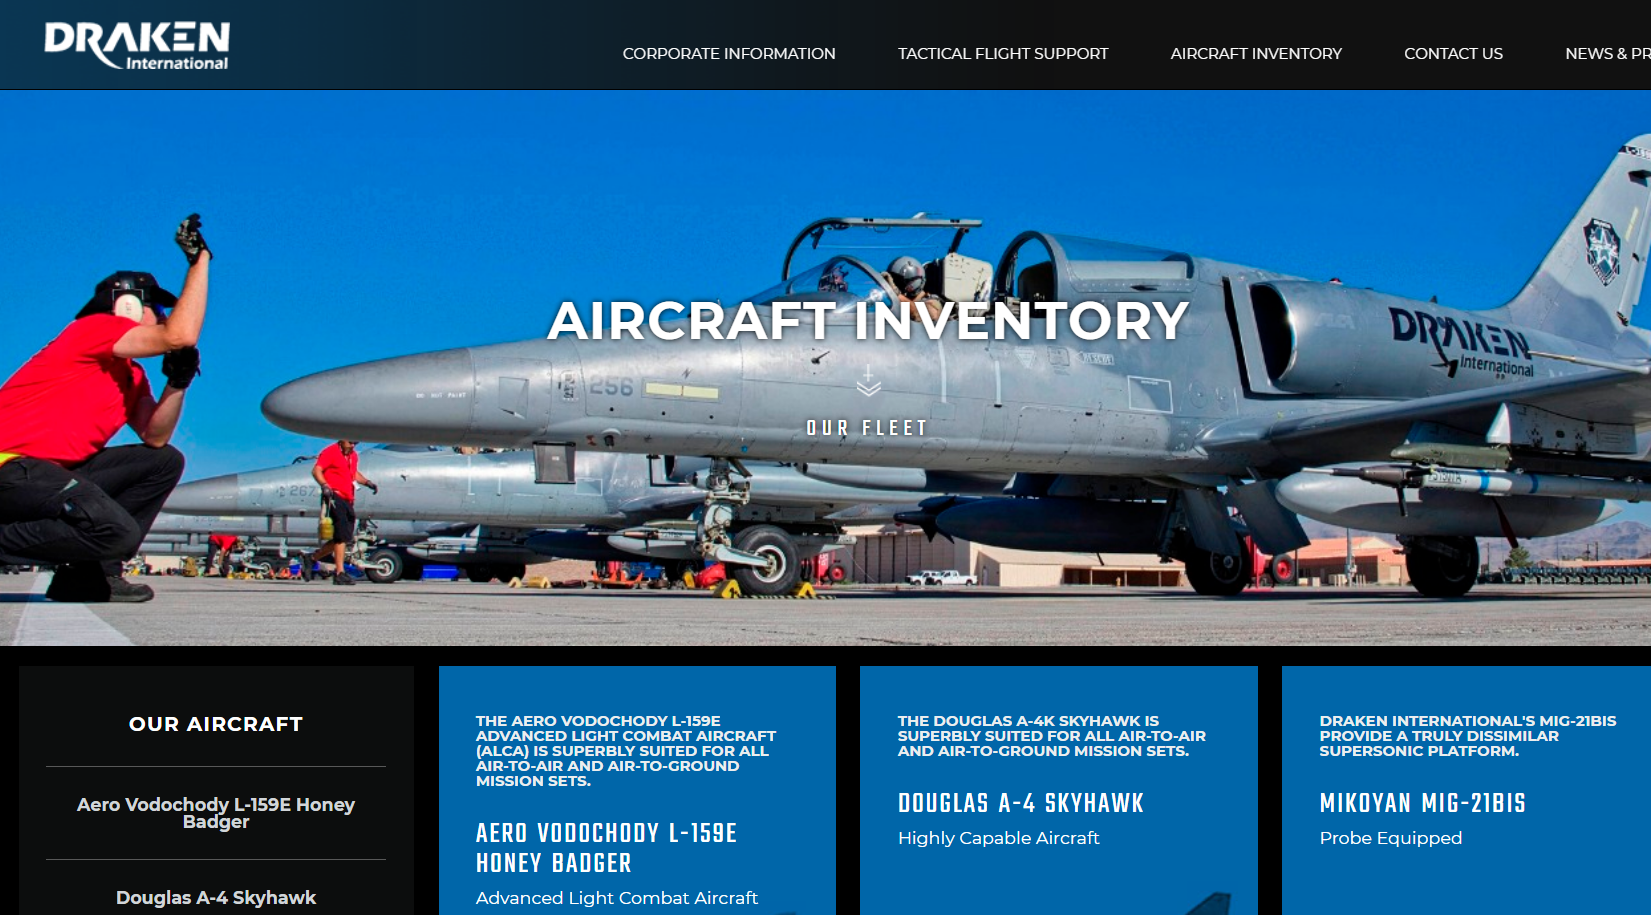 """Image: EXCLUSIVE: Private company offering """"contract air support"""" using military jet fighters located in Lakeland, FL where live air-to-air missile was just found"""